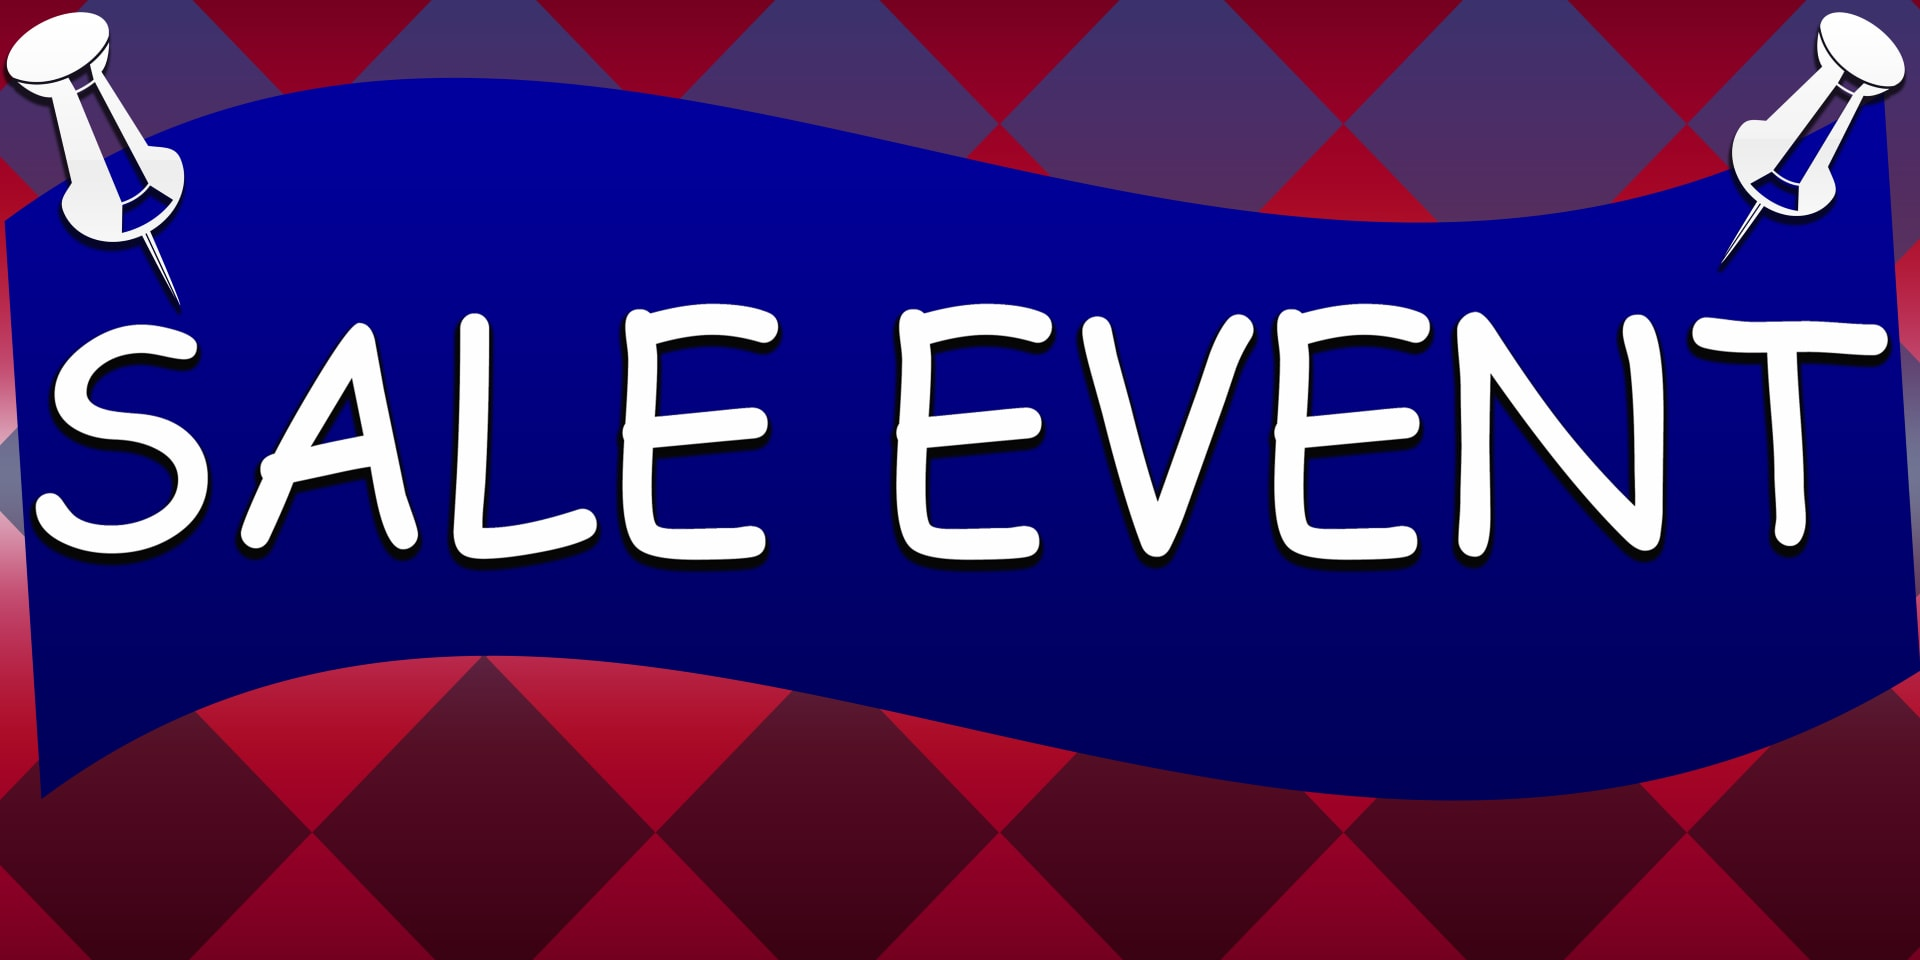 Image Banners Sale Event Pins